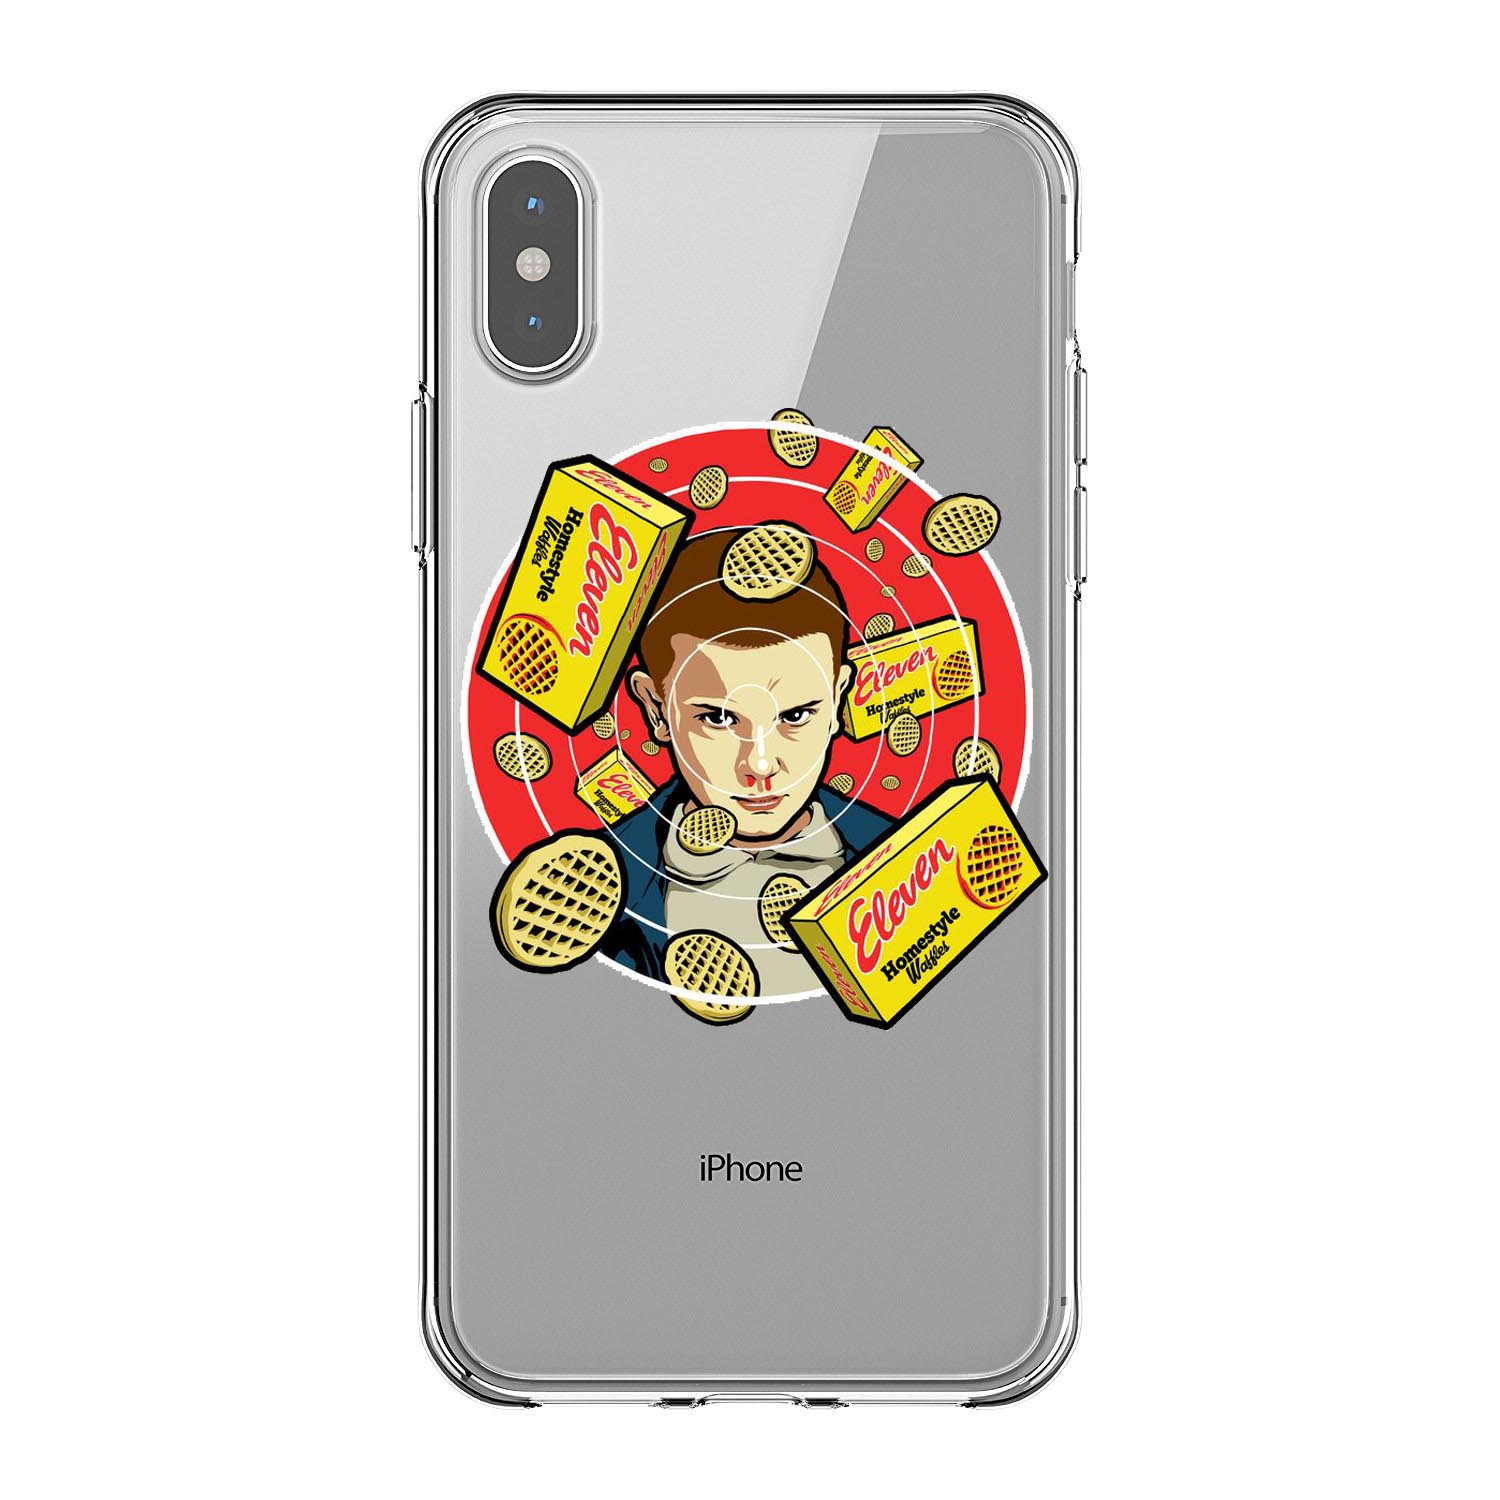 Stranger Things Christmas Lights Case For iPhone 6 6S Plus 5 5S SE 7 7 Plus 8 8Plus X Soft silicone Phone Cover in Half wrapped Cases from Cellphones Telecommunications